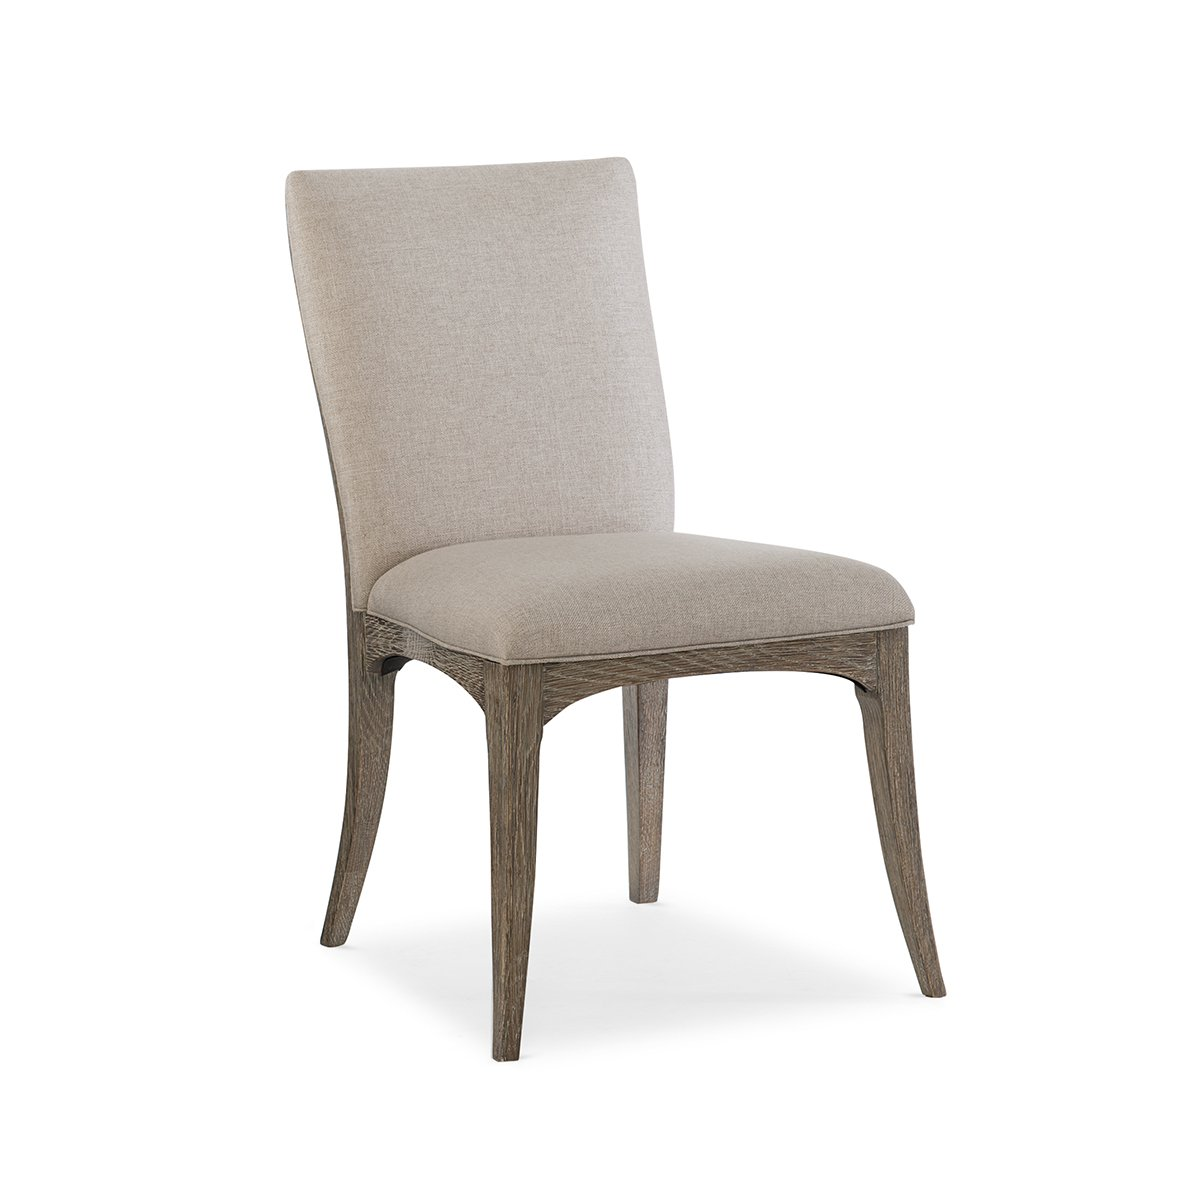 MALIBU DINING CHAIR - PAIR by Max Sparrow, a Dining Chairs for sale on Style Sourcebook